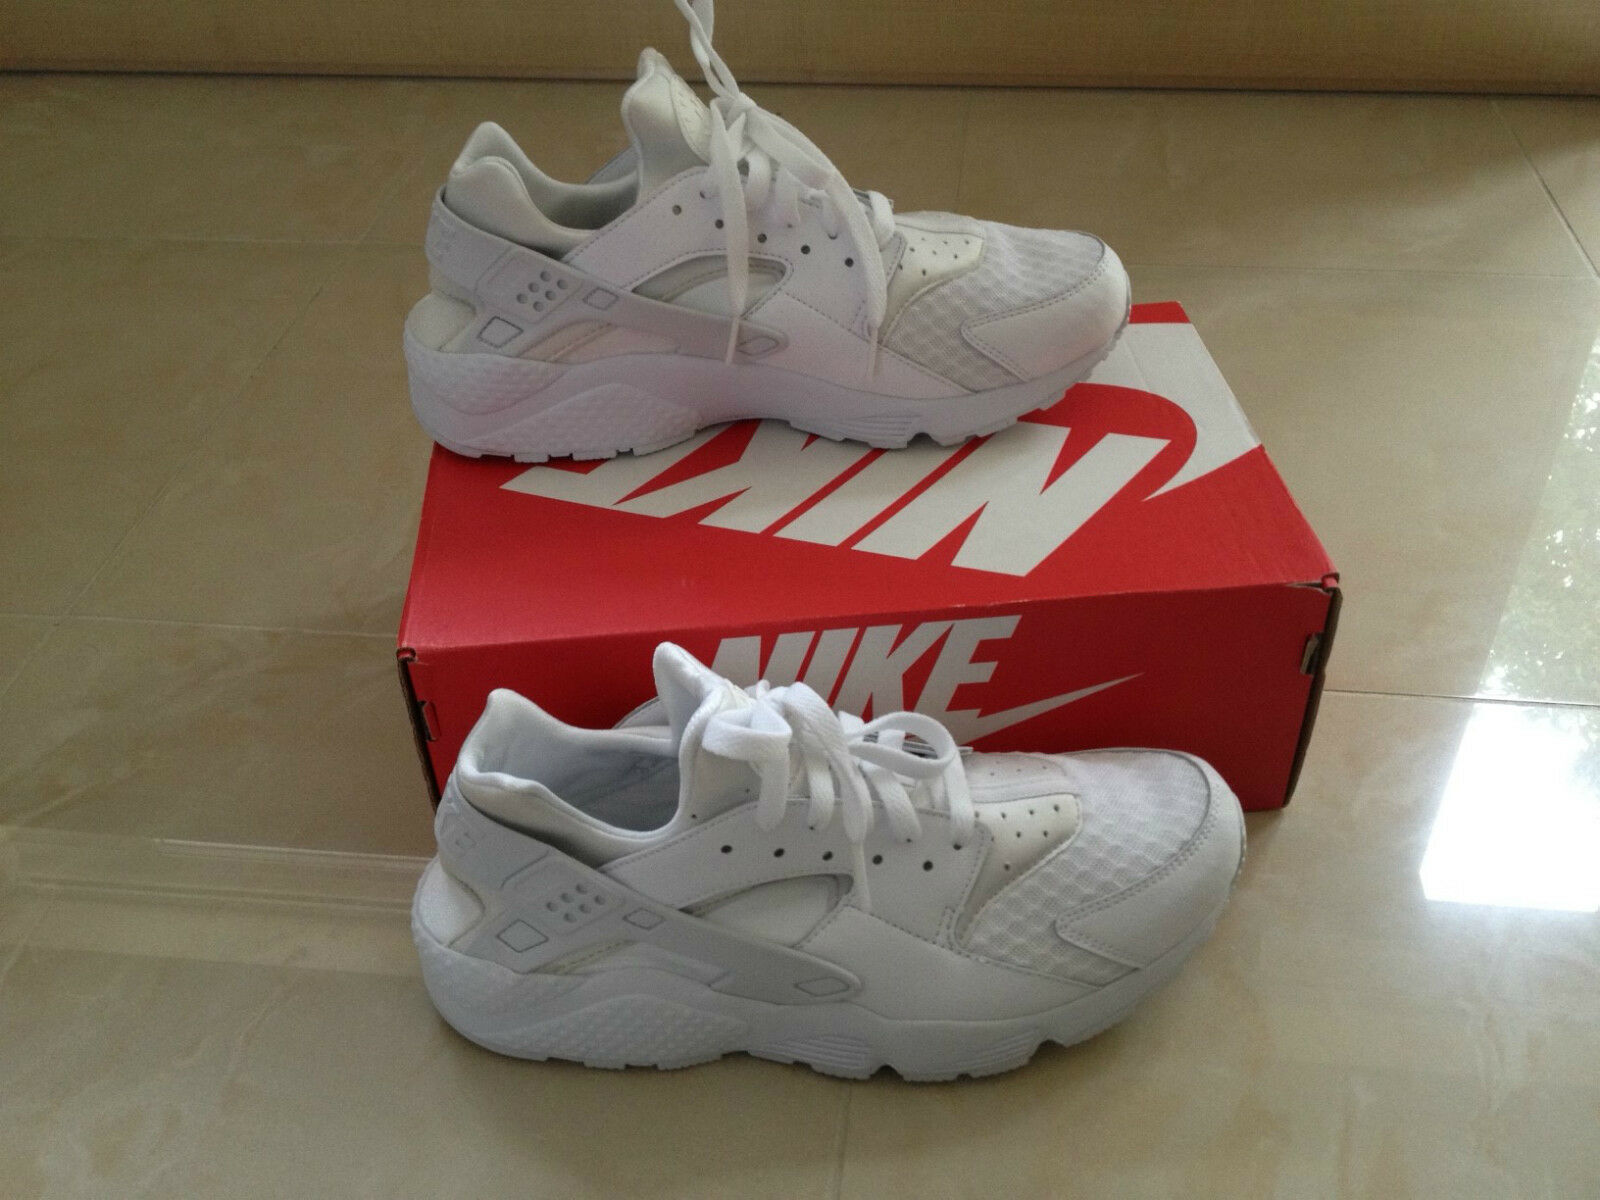 NIKE AIR HUARACHE TRIPLE Weiß PURE LIMITED PLATINUM ALL SIZES 6-13 LIMITED PURE EDITION NEW 638aee